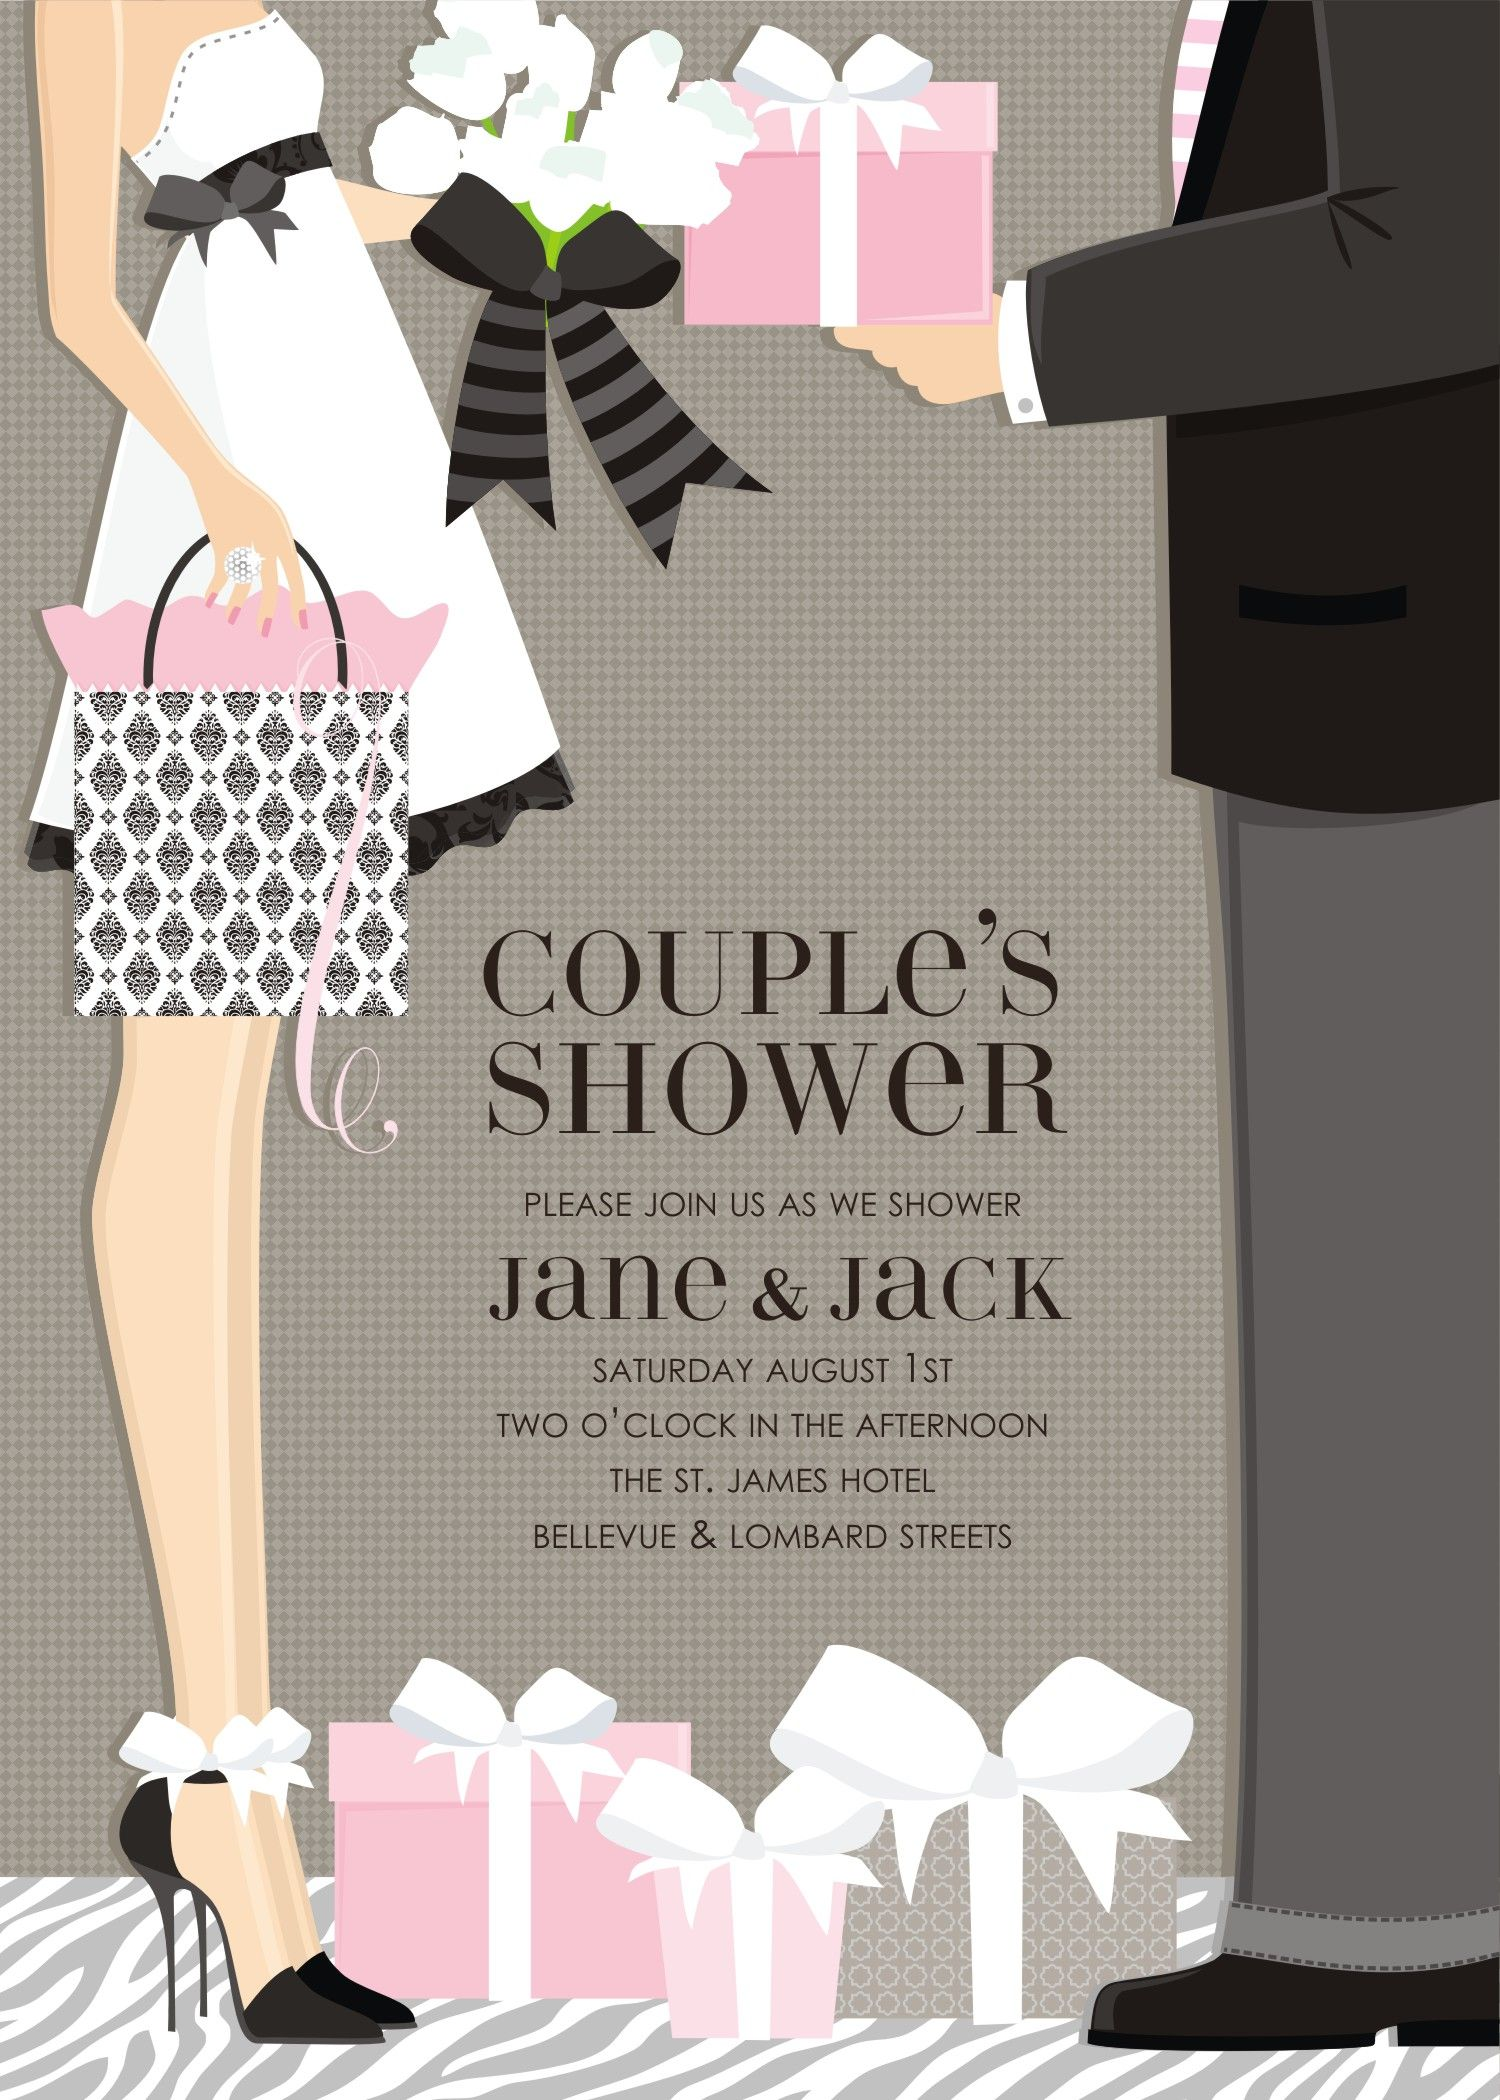 Classic Couple Bridal Shower Invitation By Doc Milo ~ This Doc Milo Bridal  Shower Invitation Features